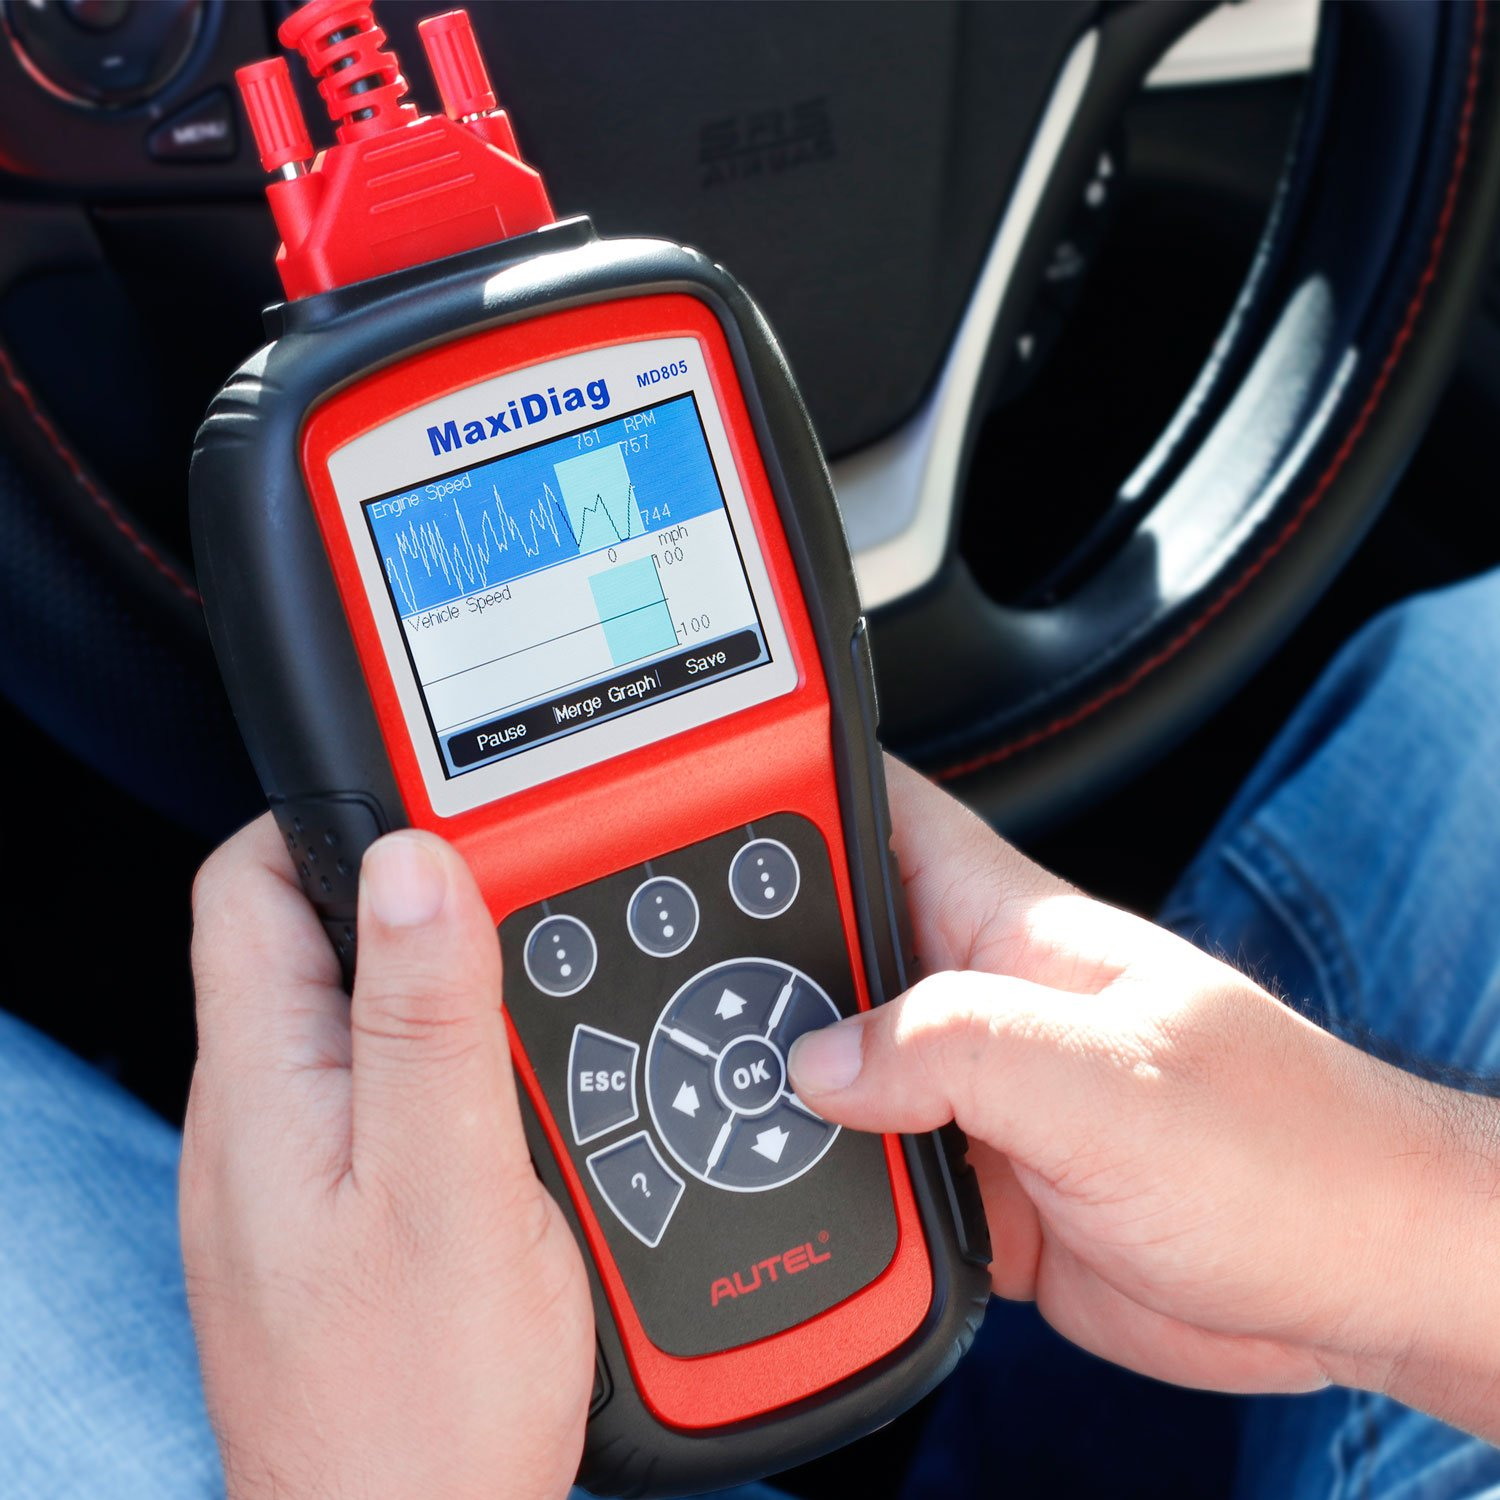 Autel MaxiDiag MD805 (Autel MD802)Scan tool All System Engine, Transmission, ABS, Airbag,EPB,OIL Service Reset & Electronic modules by Autel (Image #1)